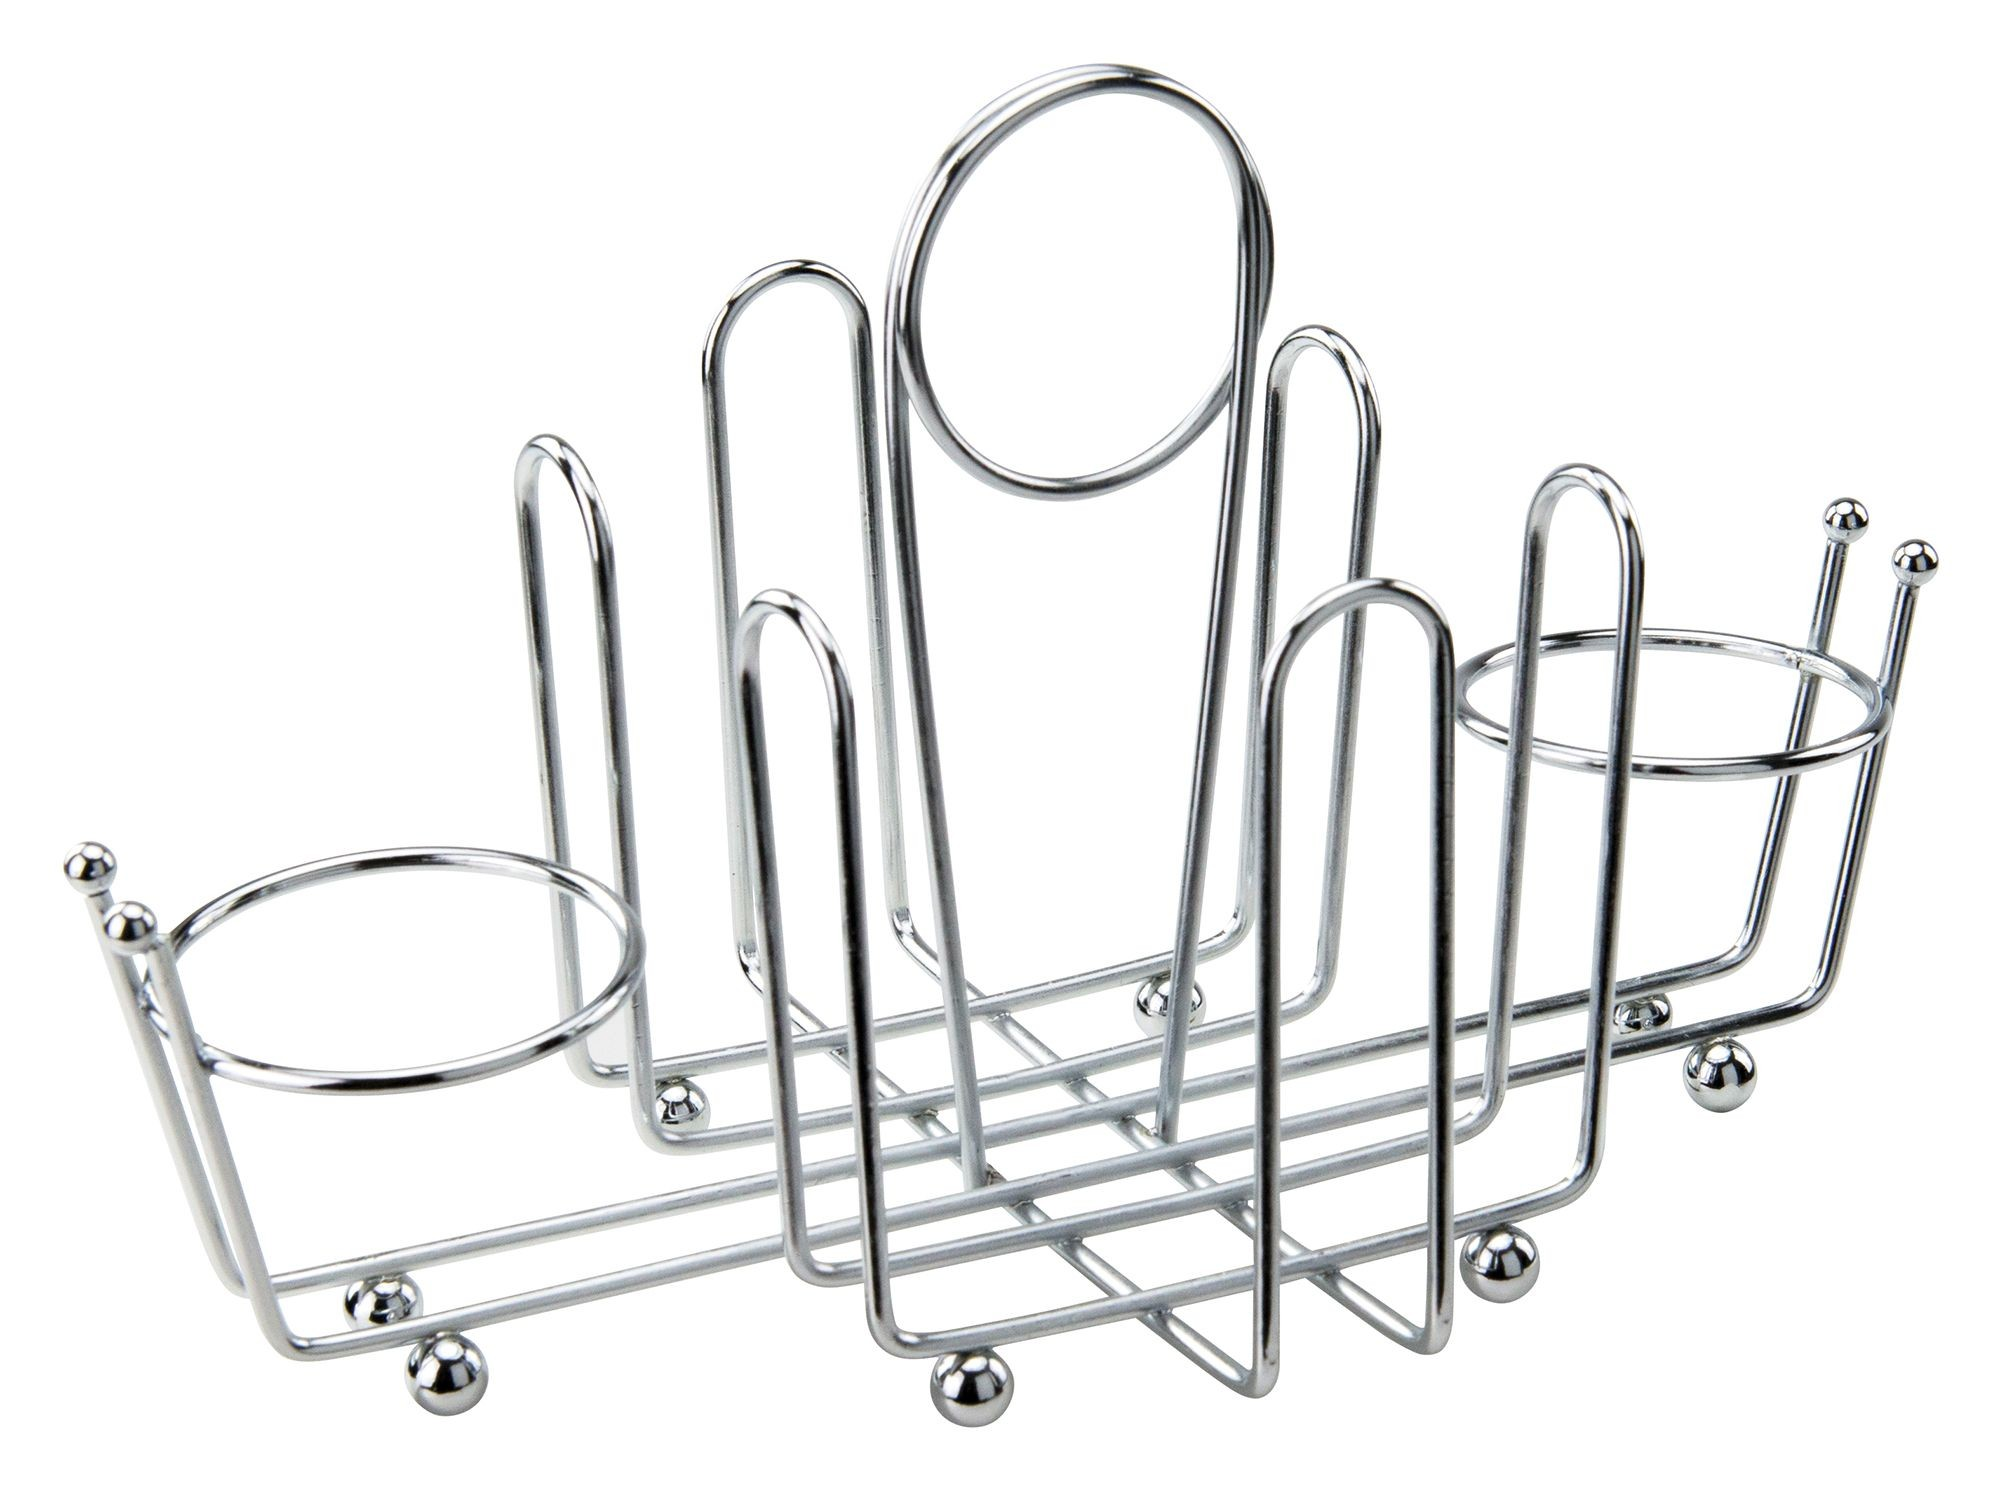 Winco WH-1 Condiment Holder with Chrome-Plated Wire & Ball Feet